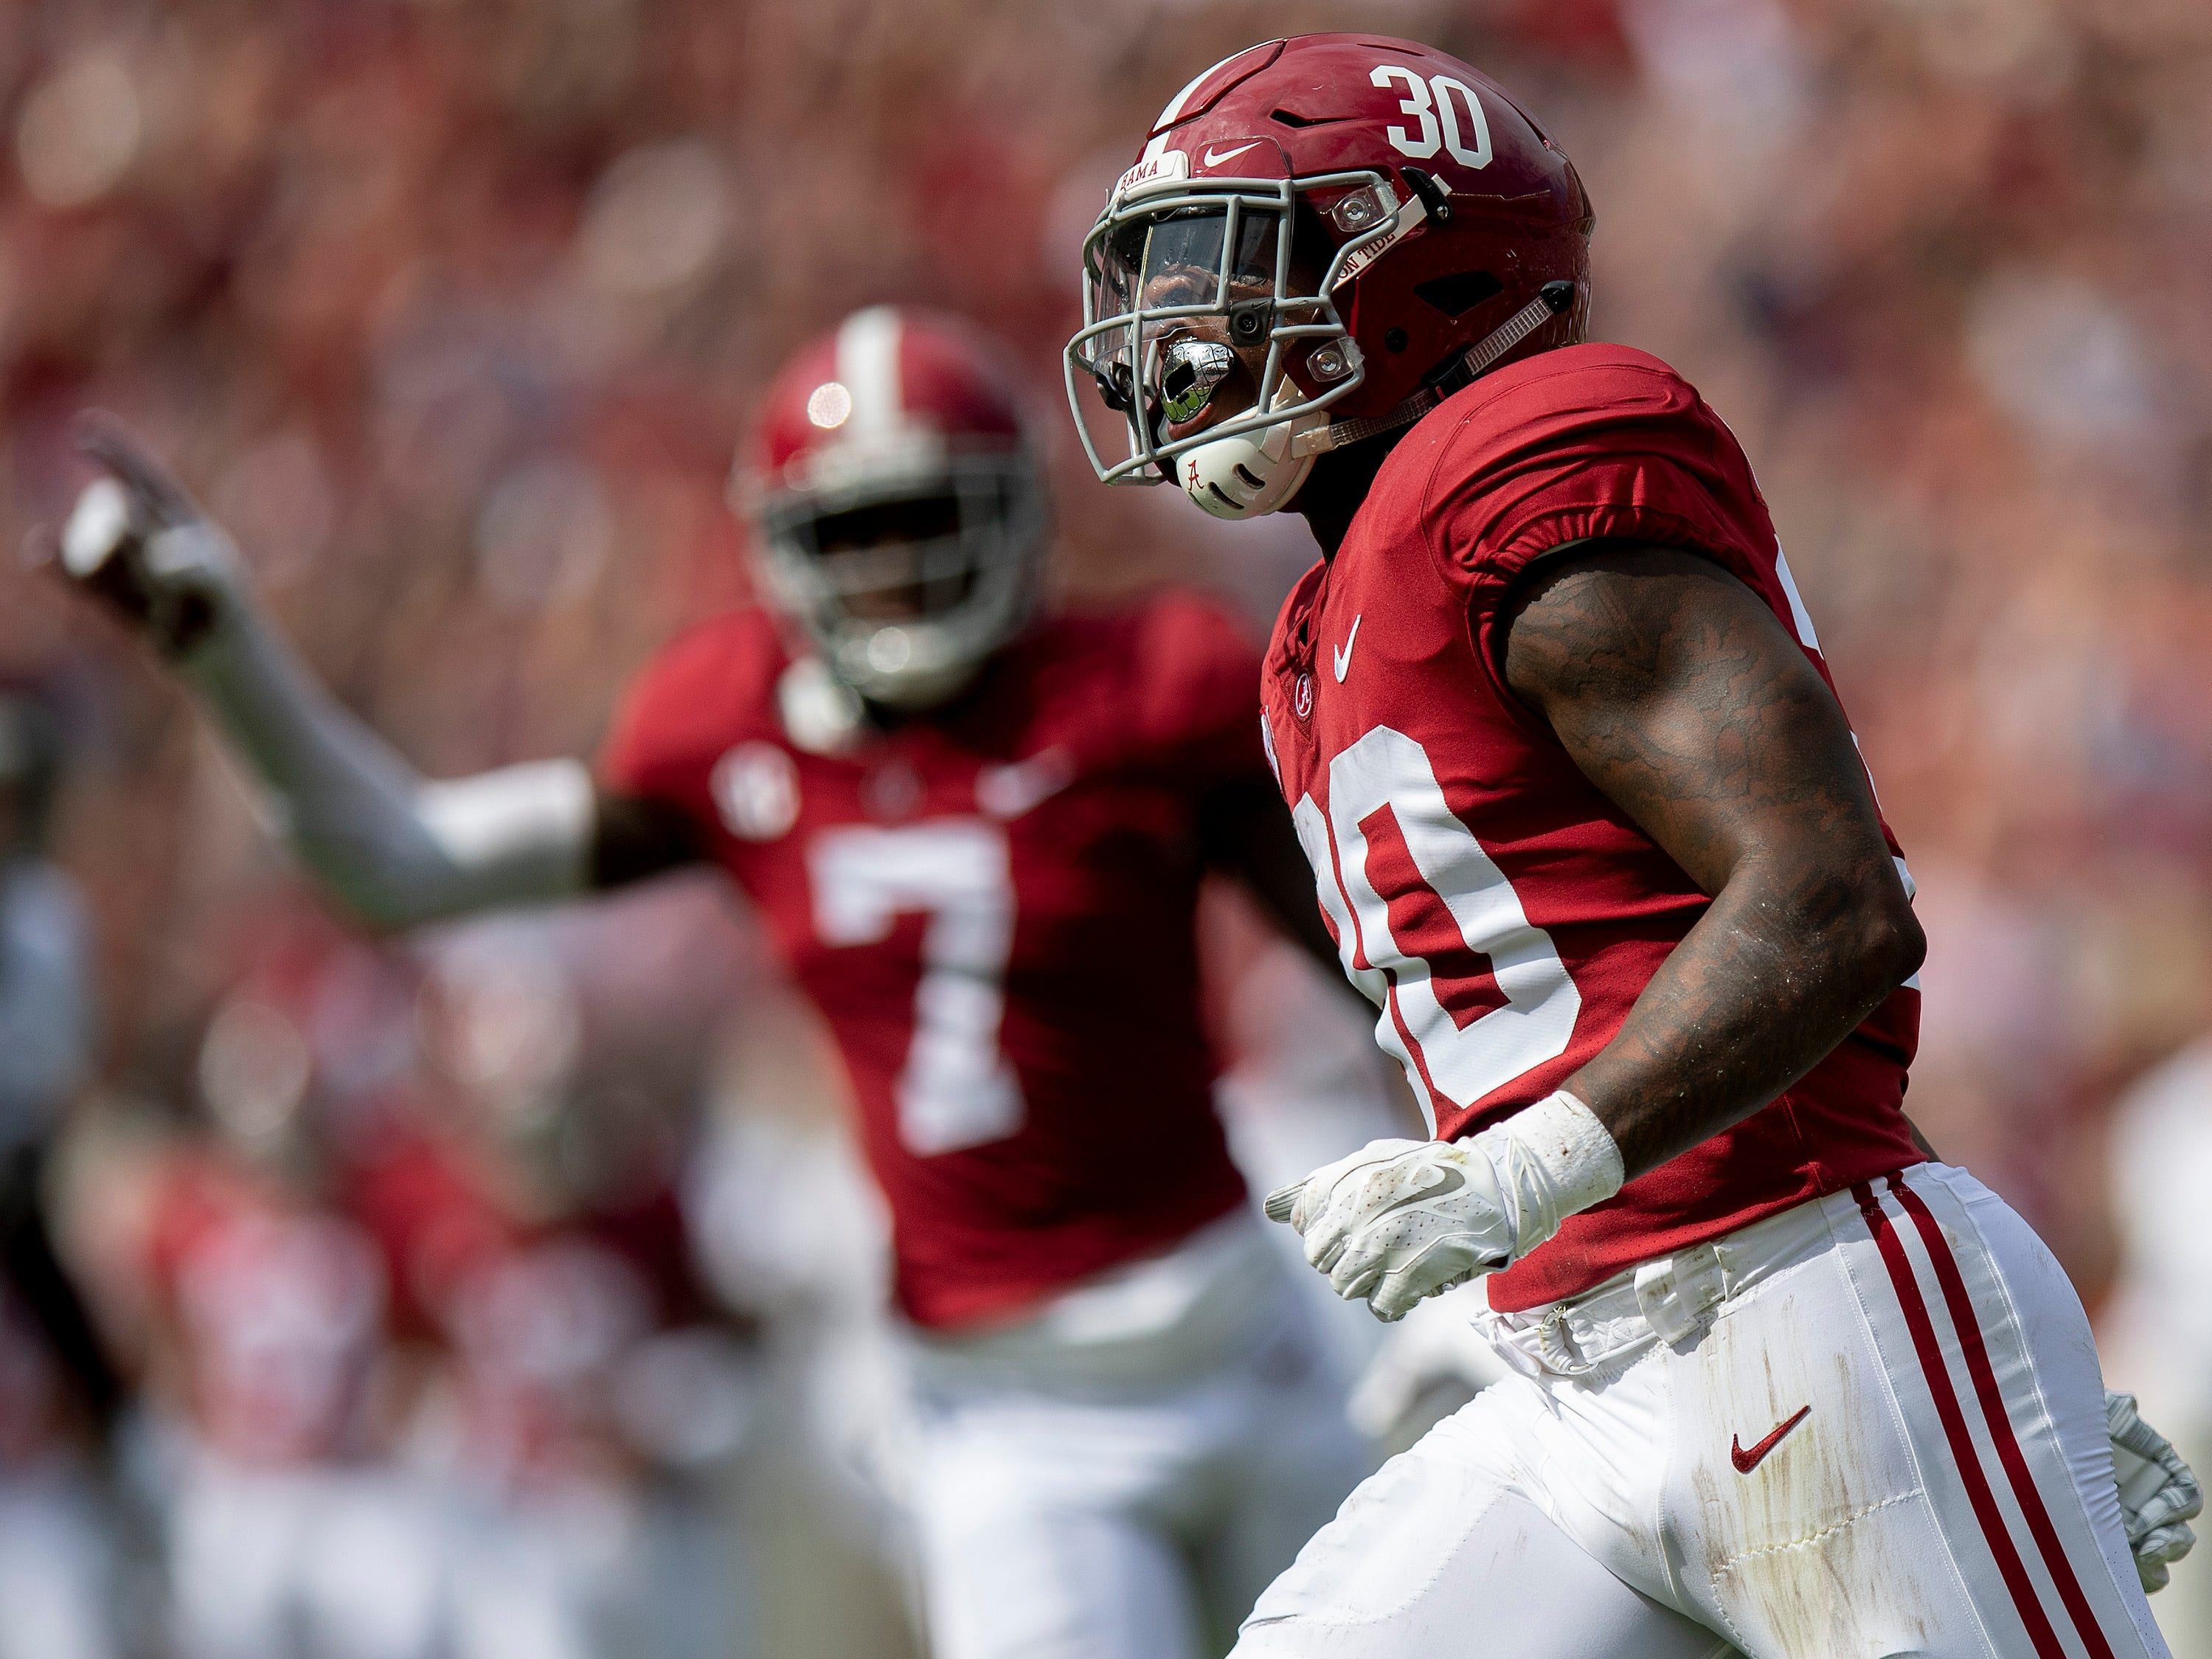 Alabama linebacker Mack Wilson (30) celebrates intercepting a pass against Texas A&M in first half action in Tuscaloosa, Ala., on Saturday September 22, 2018.